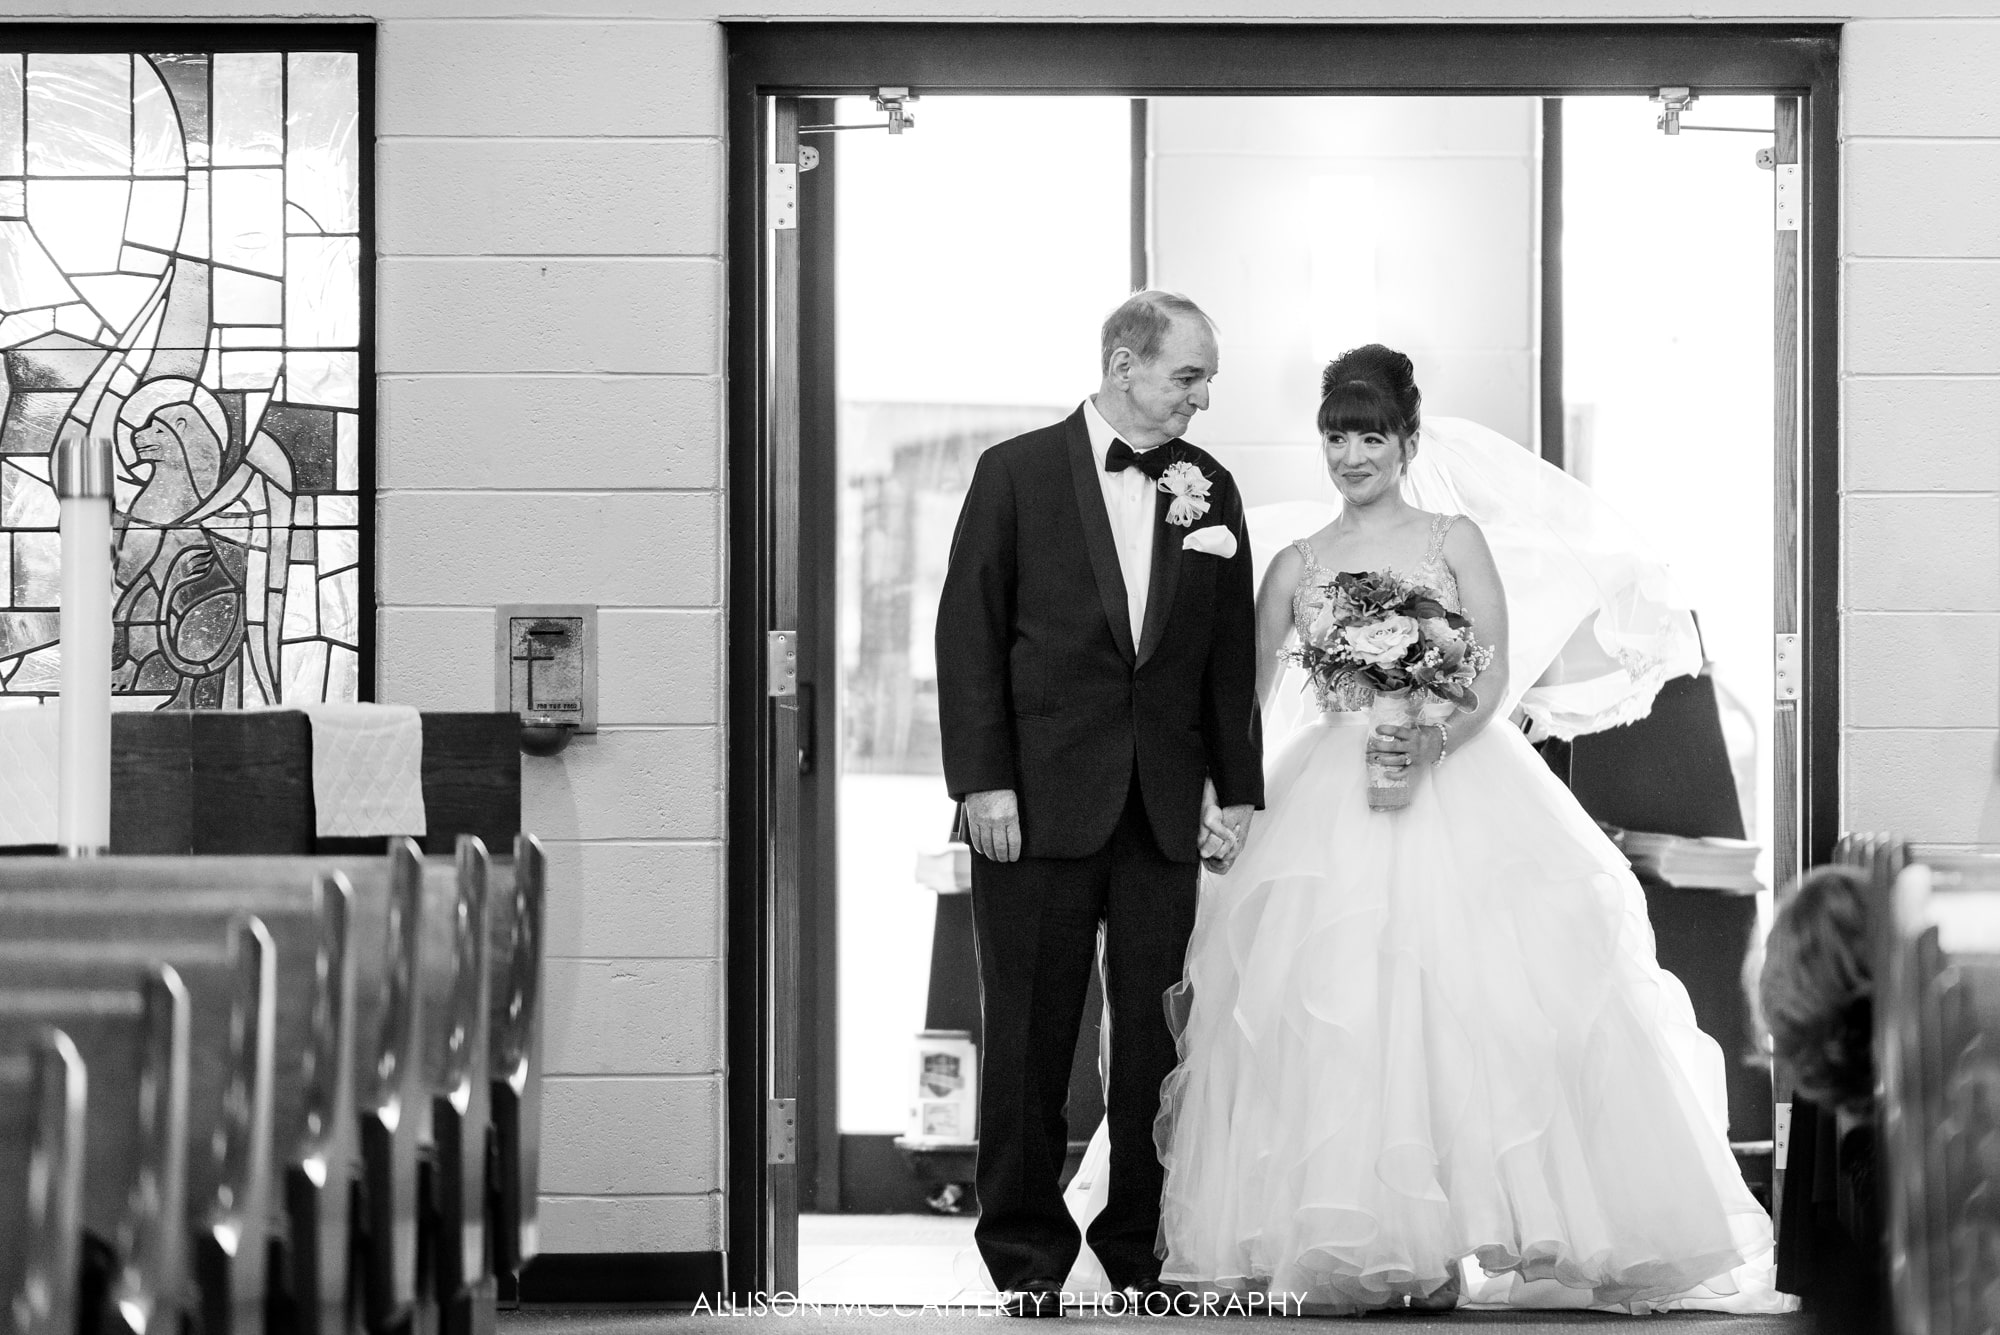 Black and White photo of the bride and her dad getting ready to walk down the aisle